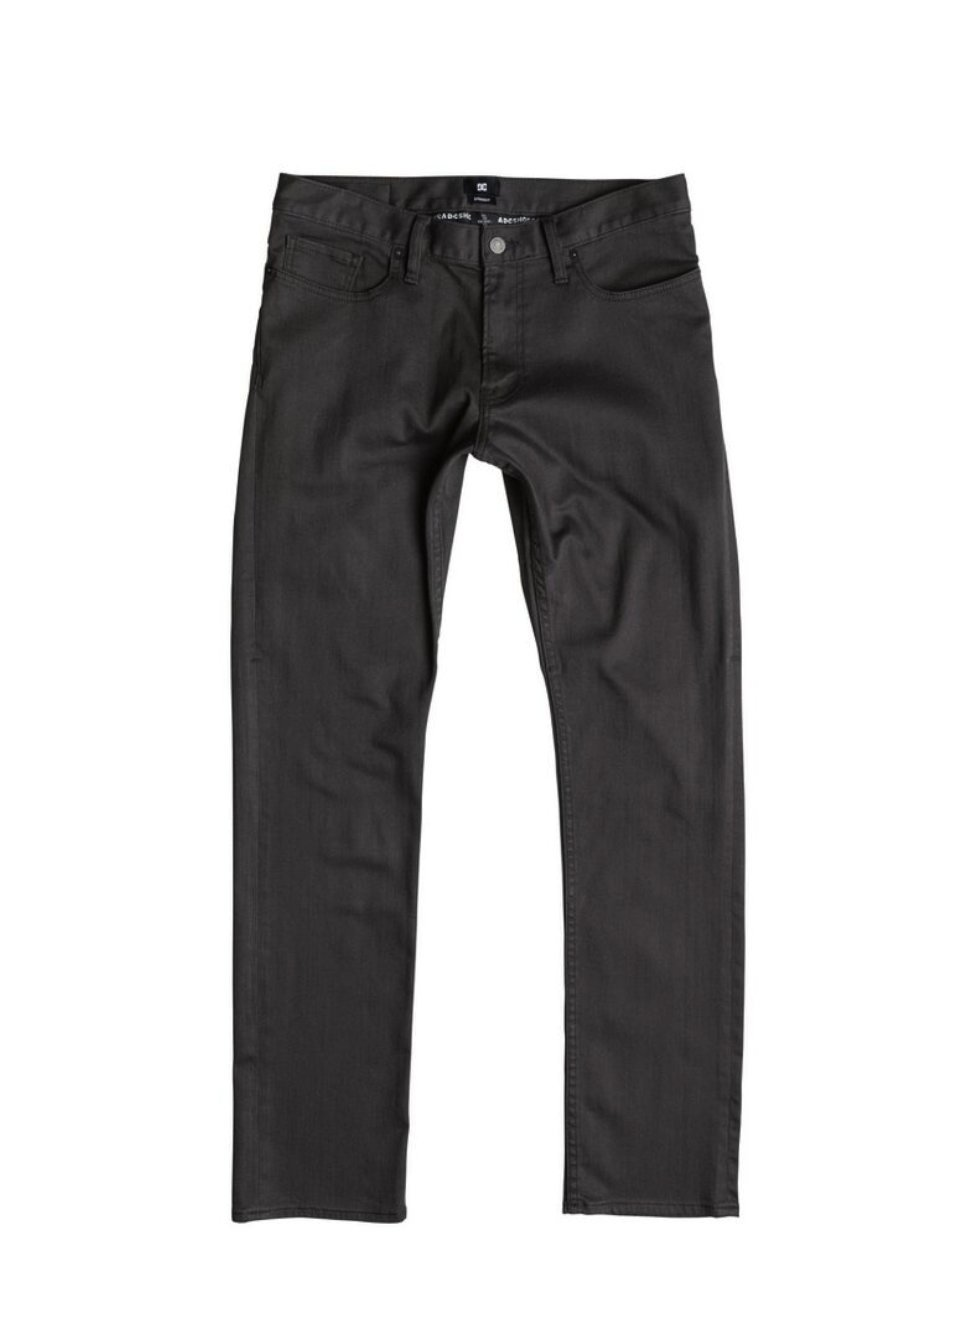 DC SHOES STRAIGHT JEANS CQW0 - LM BOARD STORE